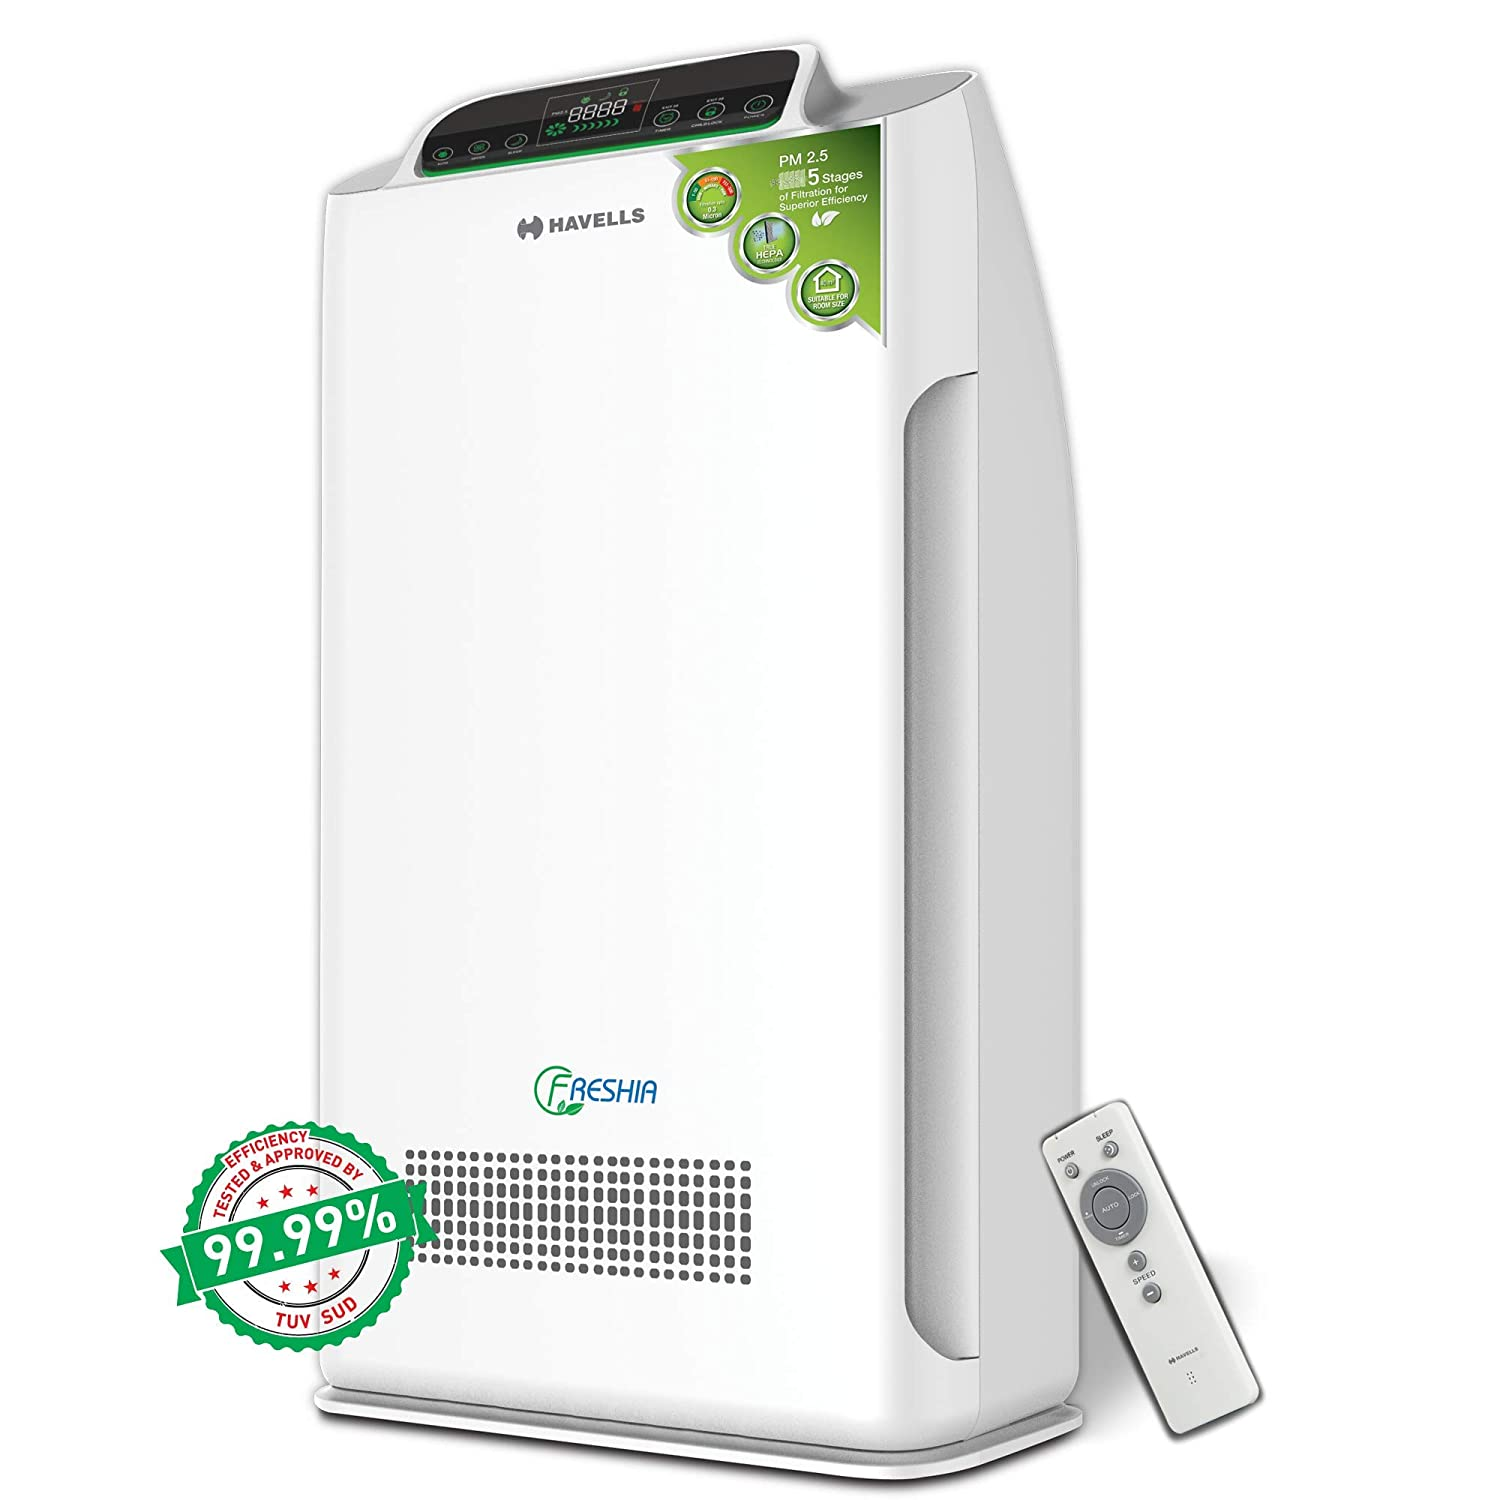 Havells Freshia AP-40 80-Watt Air Purifier